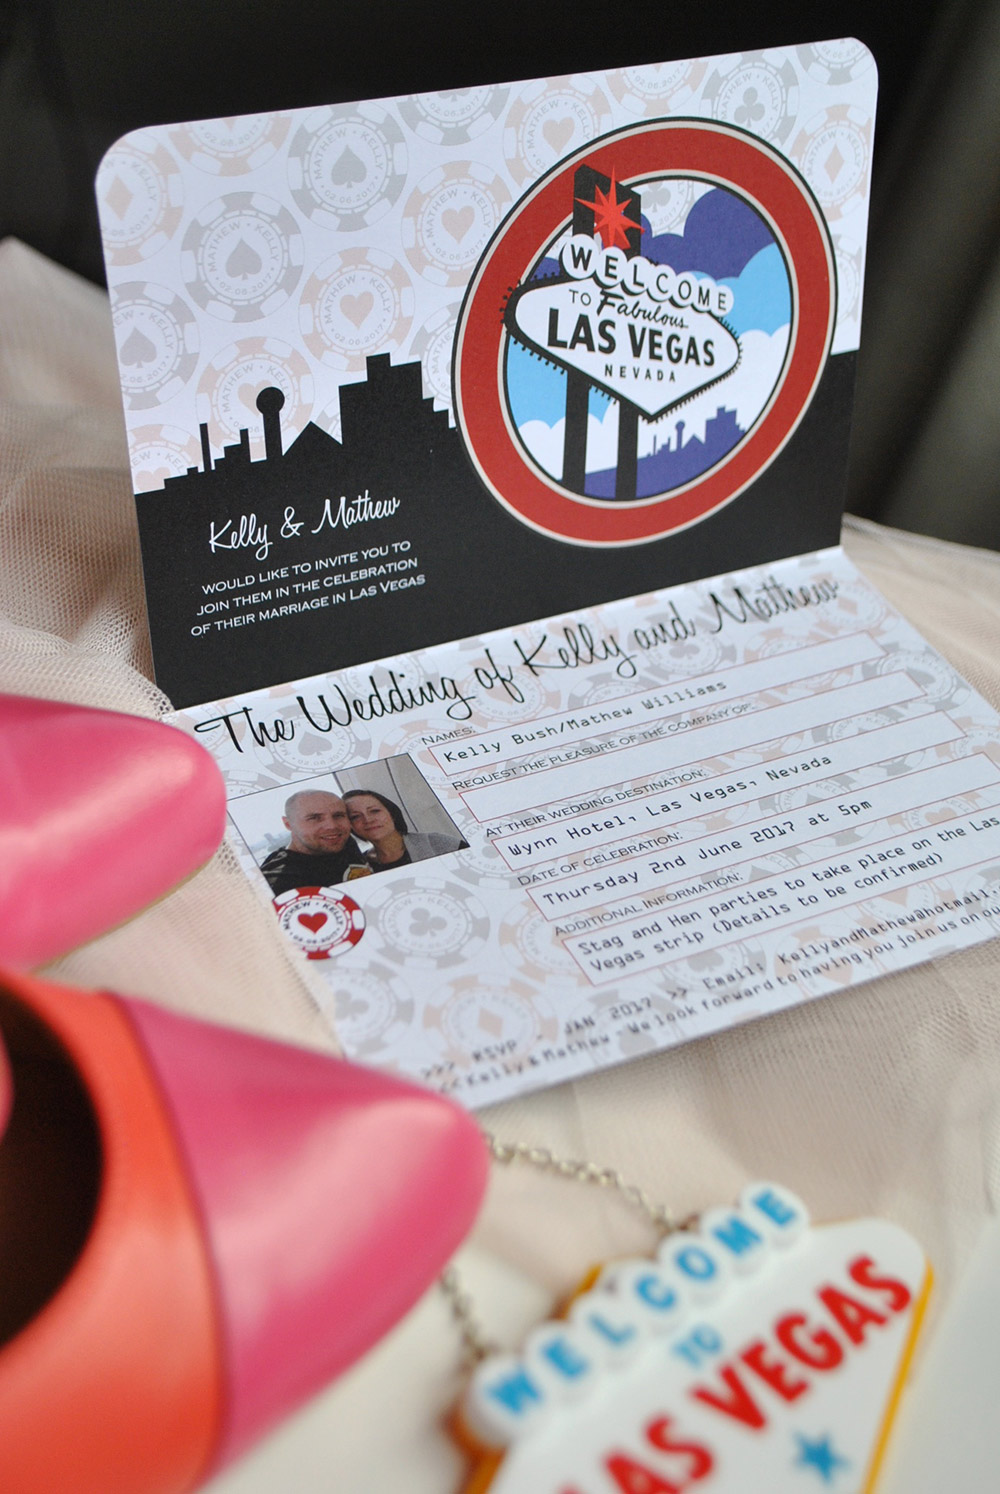 Las Vegas Wedding Passport with matching Postcard RSVP